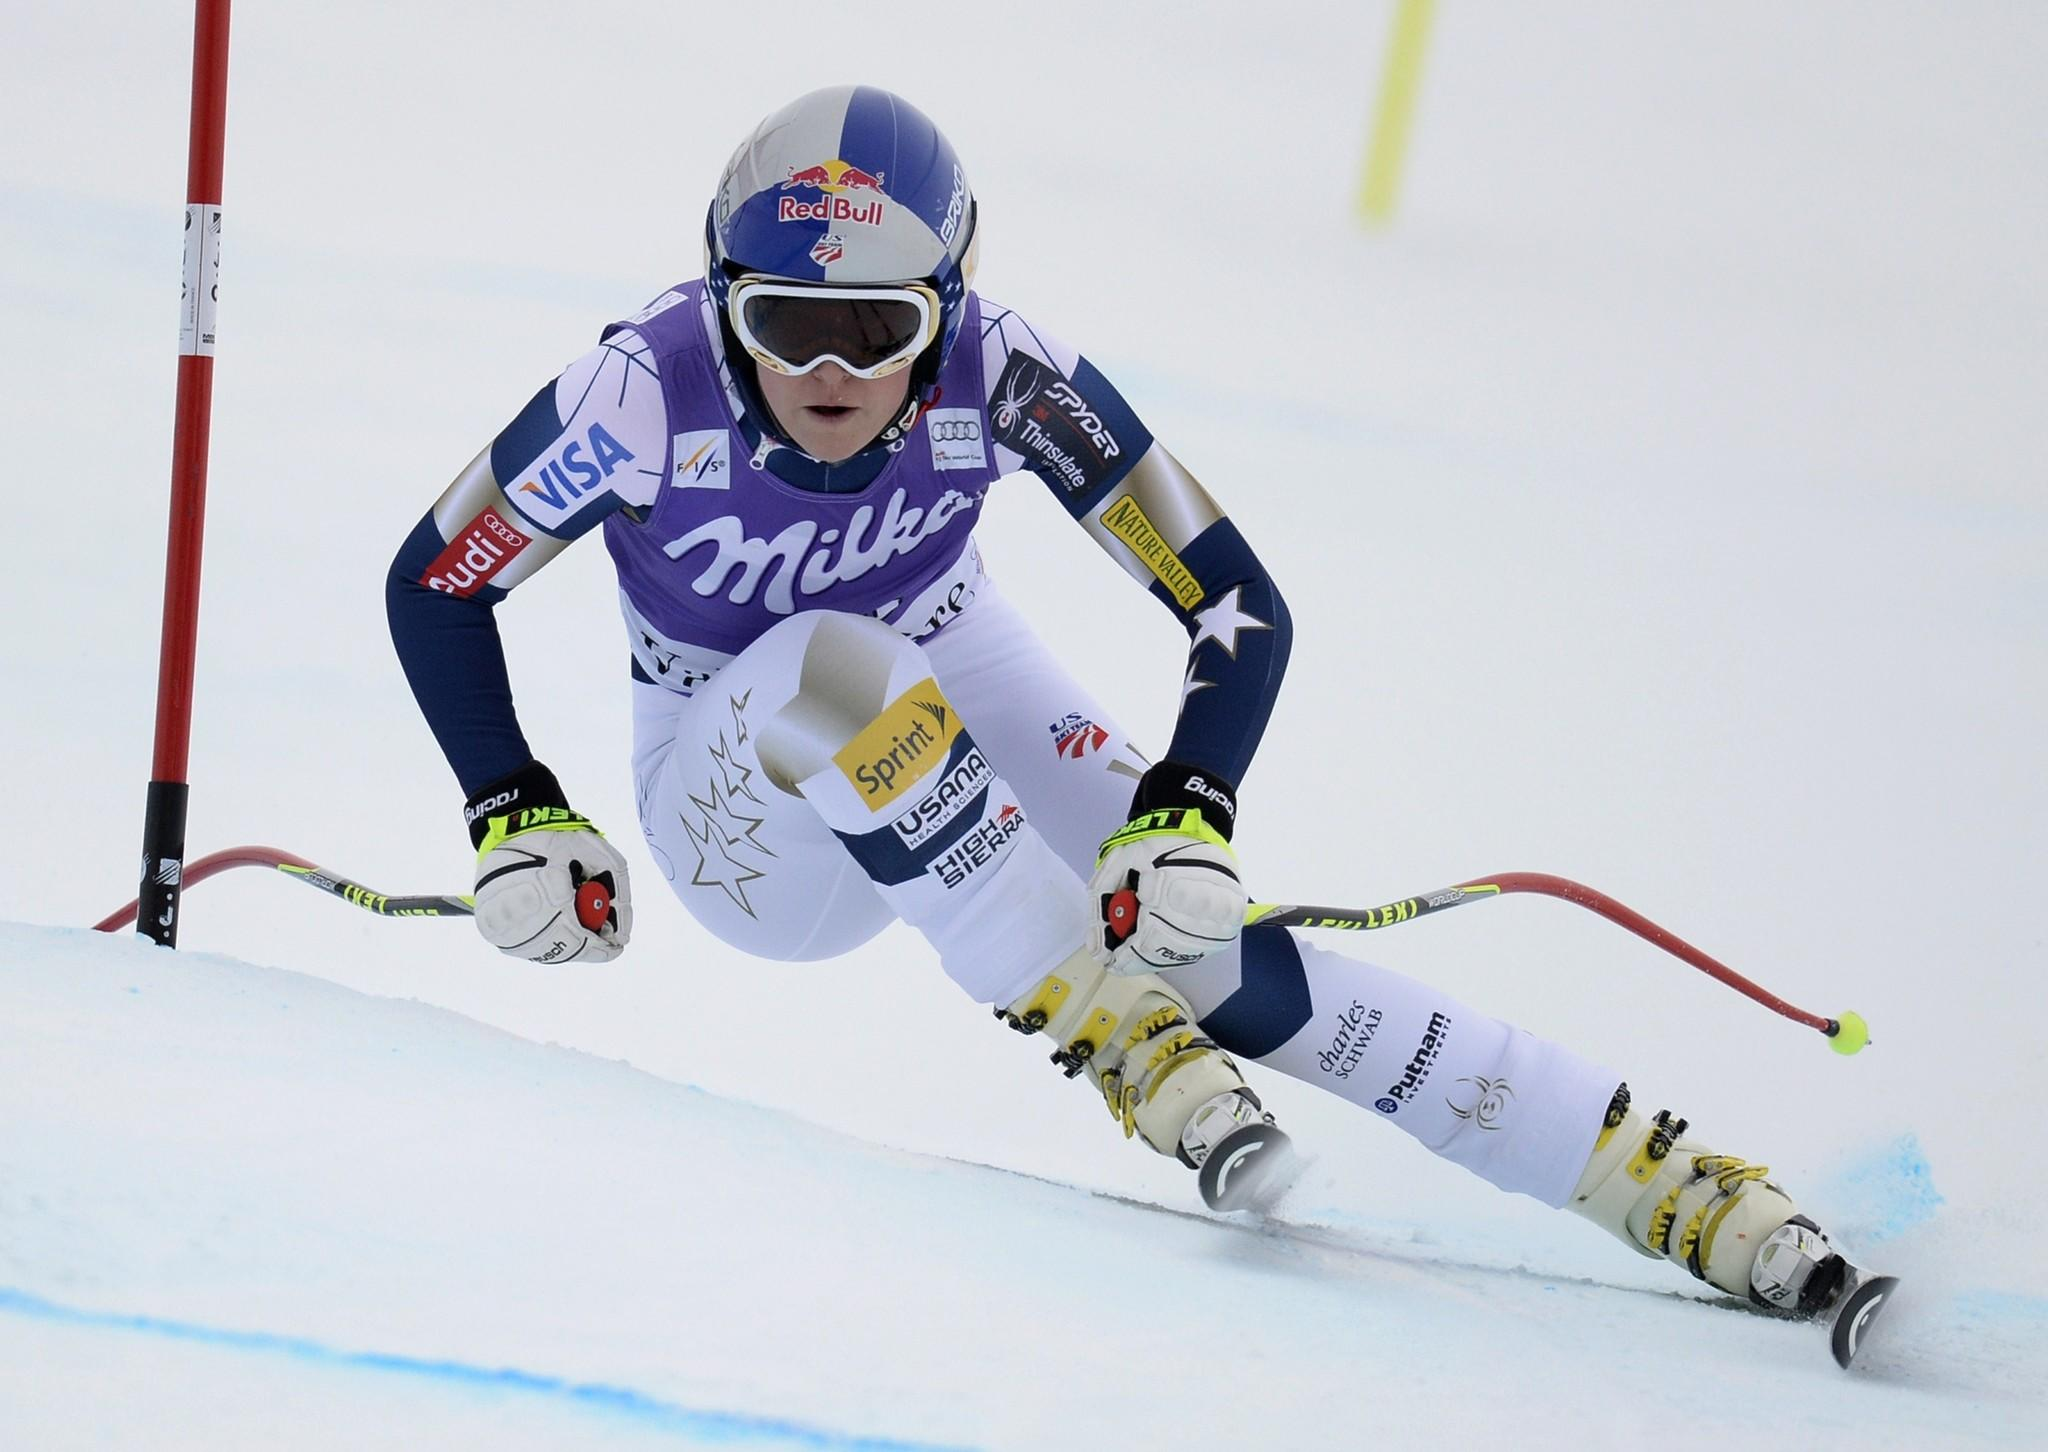 Lindsey Vonn, here competing during the second training session of the FIS Alpine World Cup Women's Downhill in December 19, 2013, announced she will miss next month's Sochi Winter Olympics due to a knee injury.